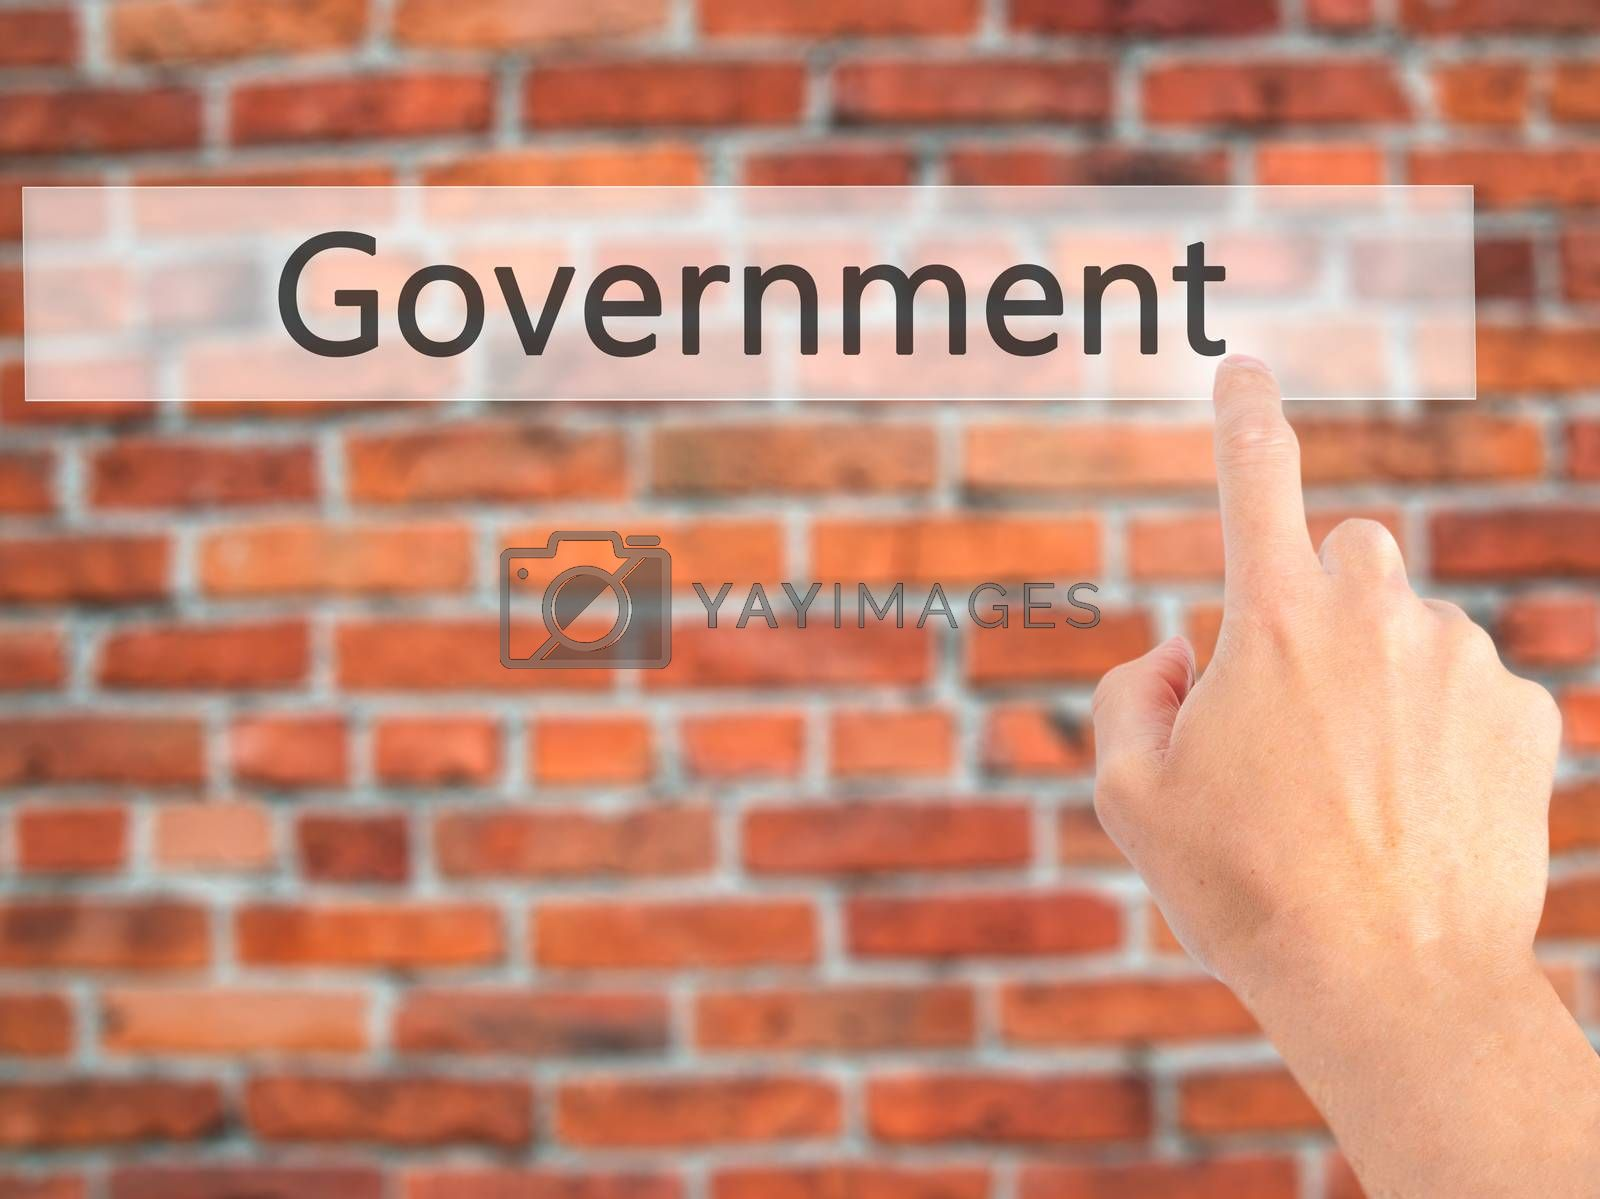 Government - Hand pressing a button on blurred background concep by netsay.net